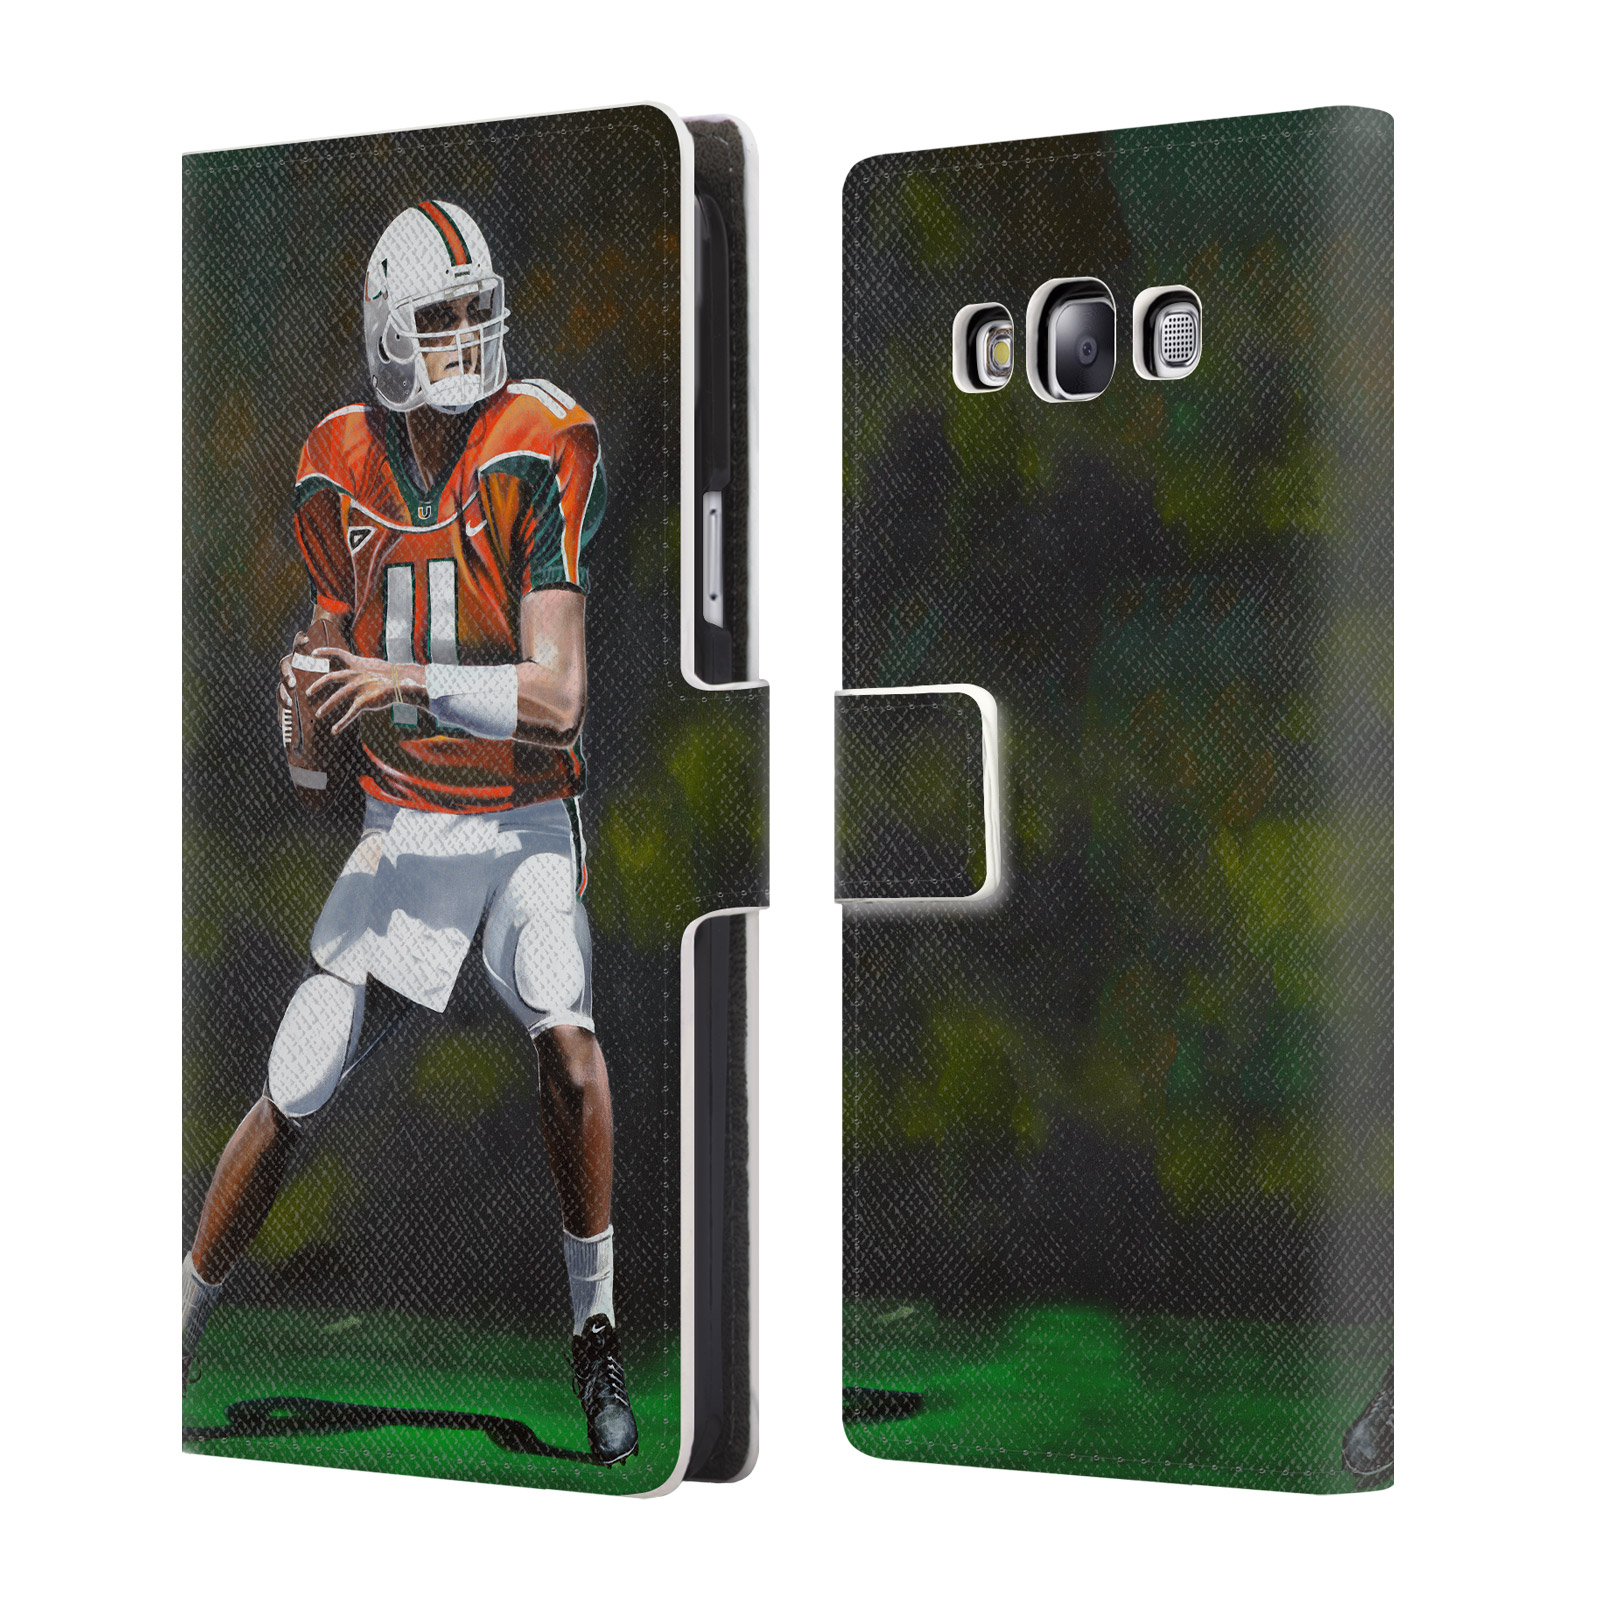 OFFICIAL-GENO-PEOPLES-ART-LIFE-LEATHER-BOOK-WALLET-CASE-FOR-SAMSUNG-PHONES-3